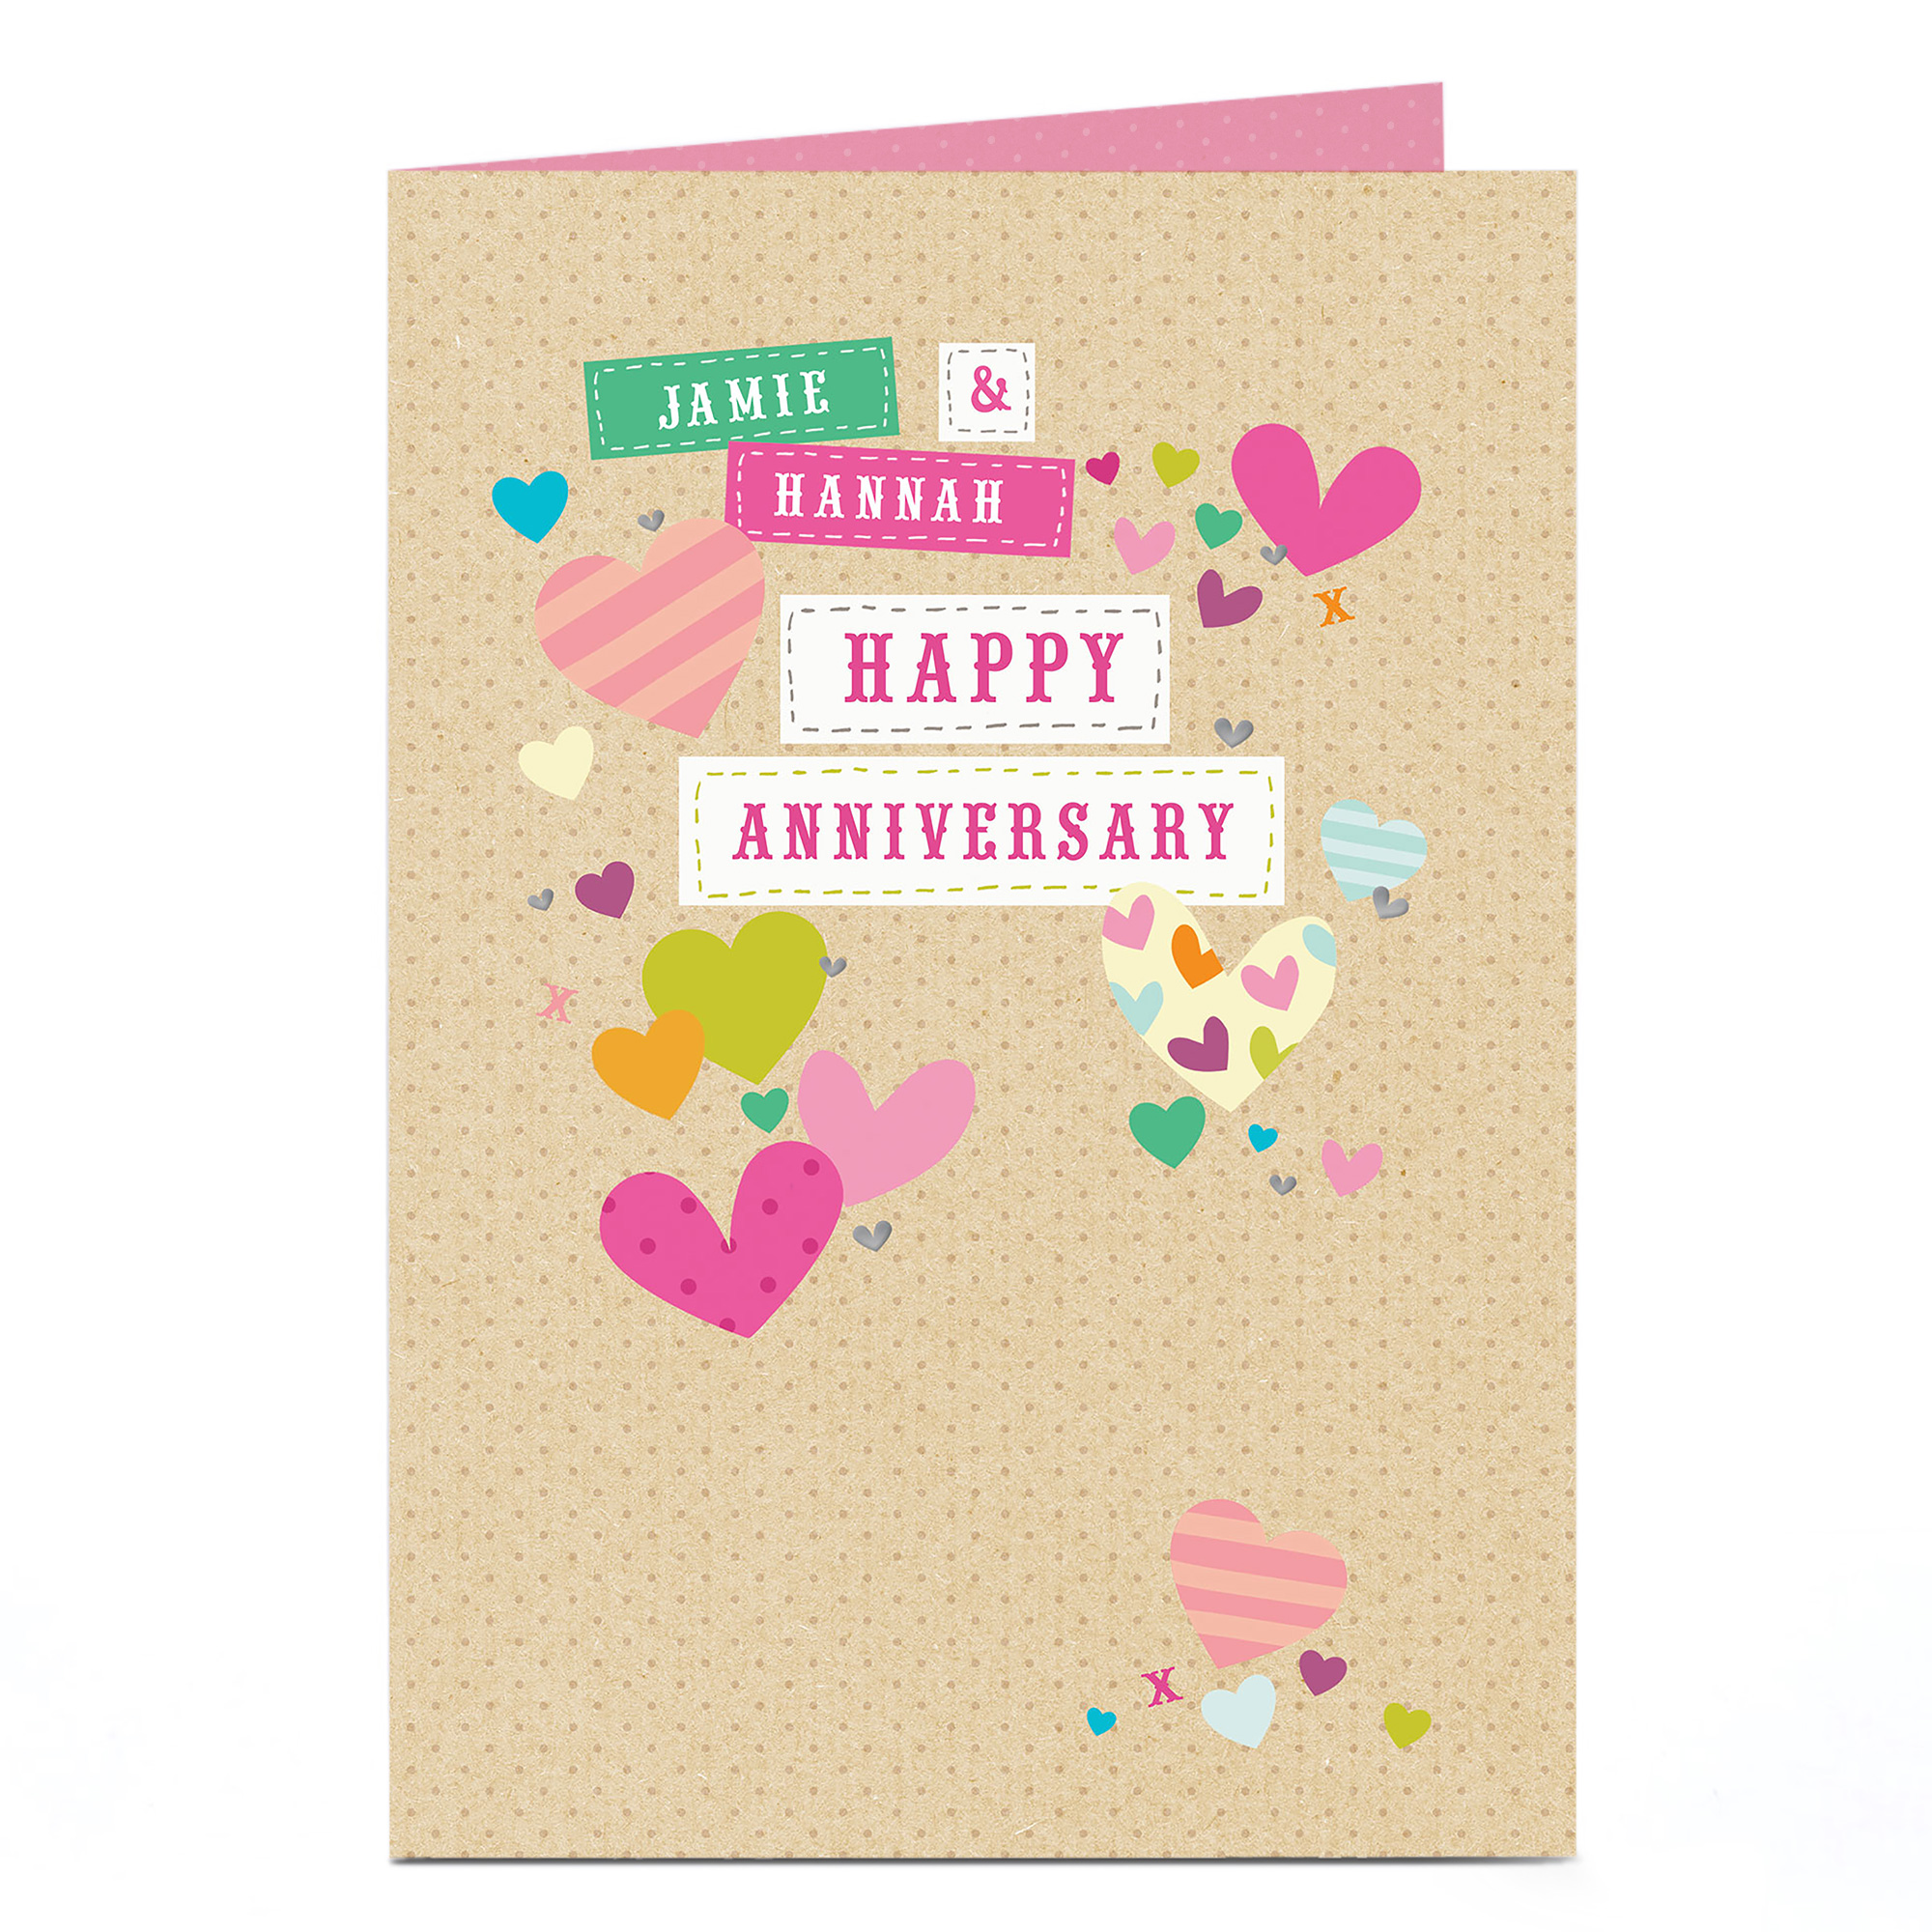 Personalised Anniversary Card - Pretty Hearts